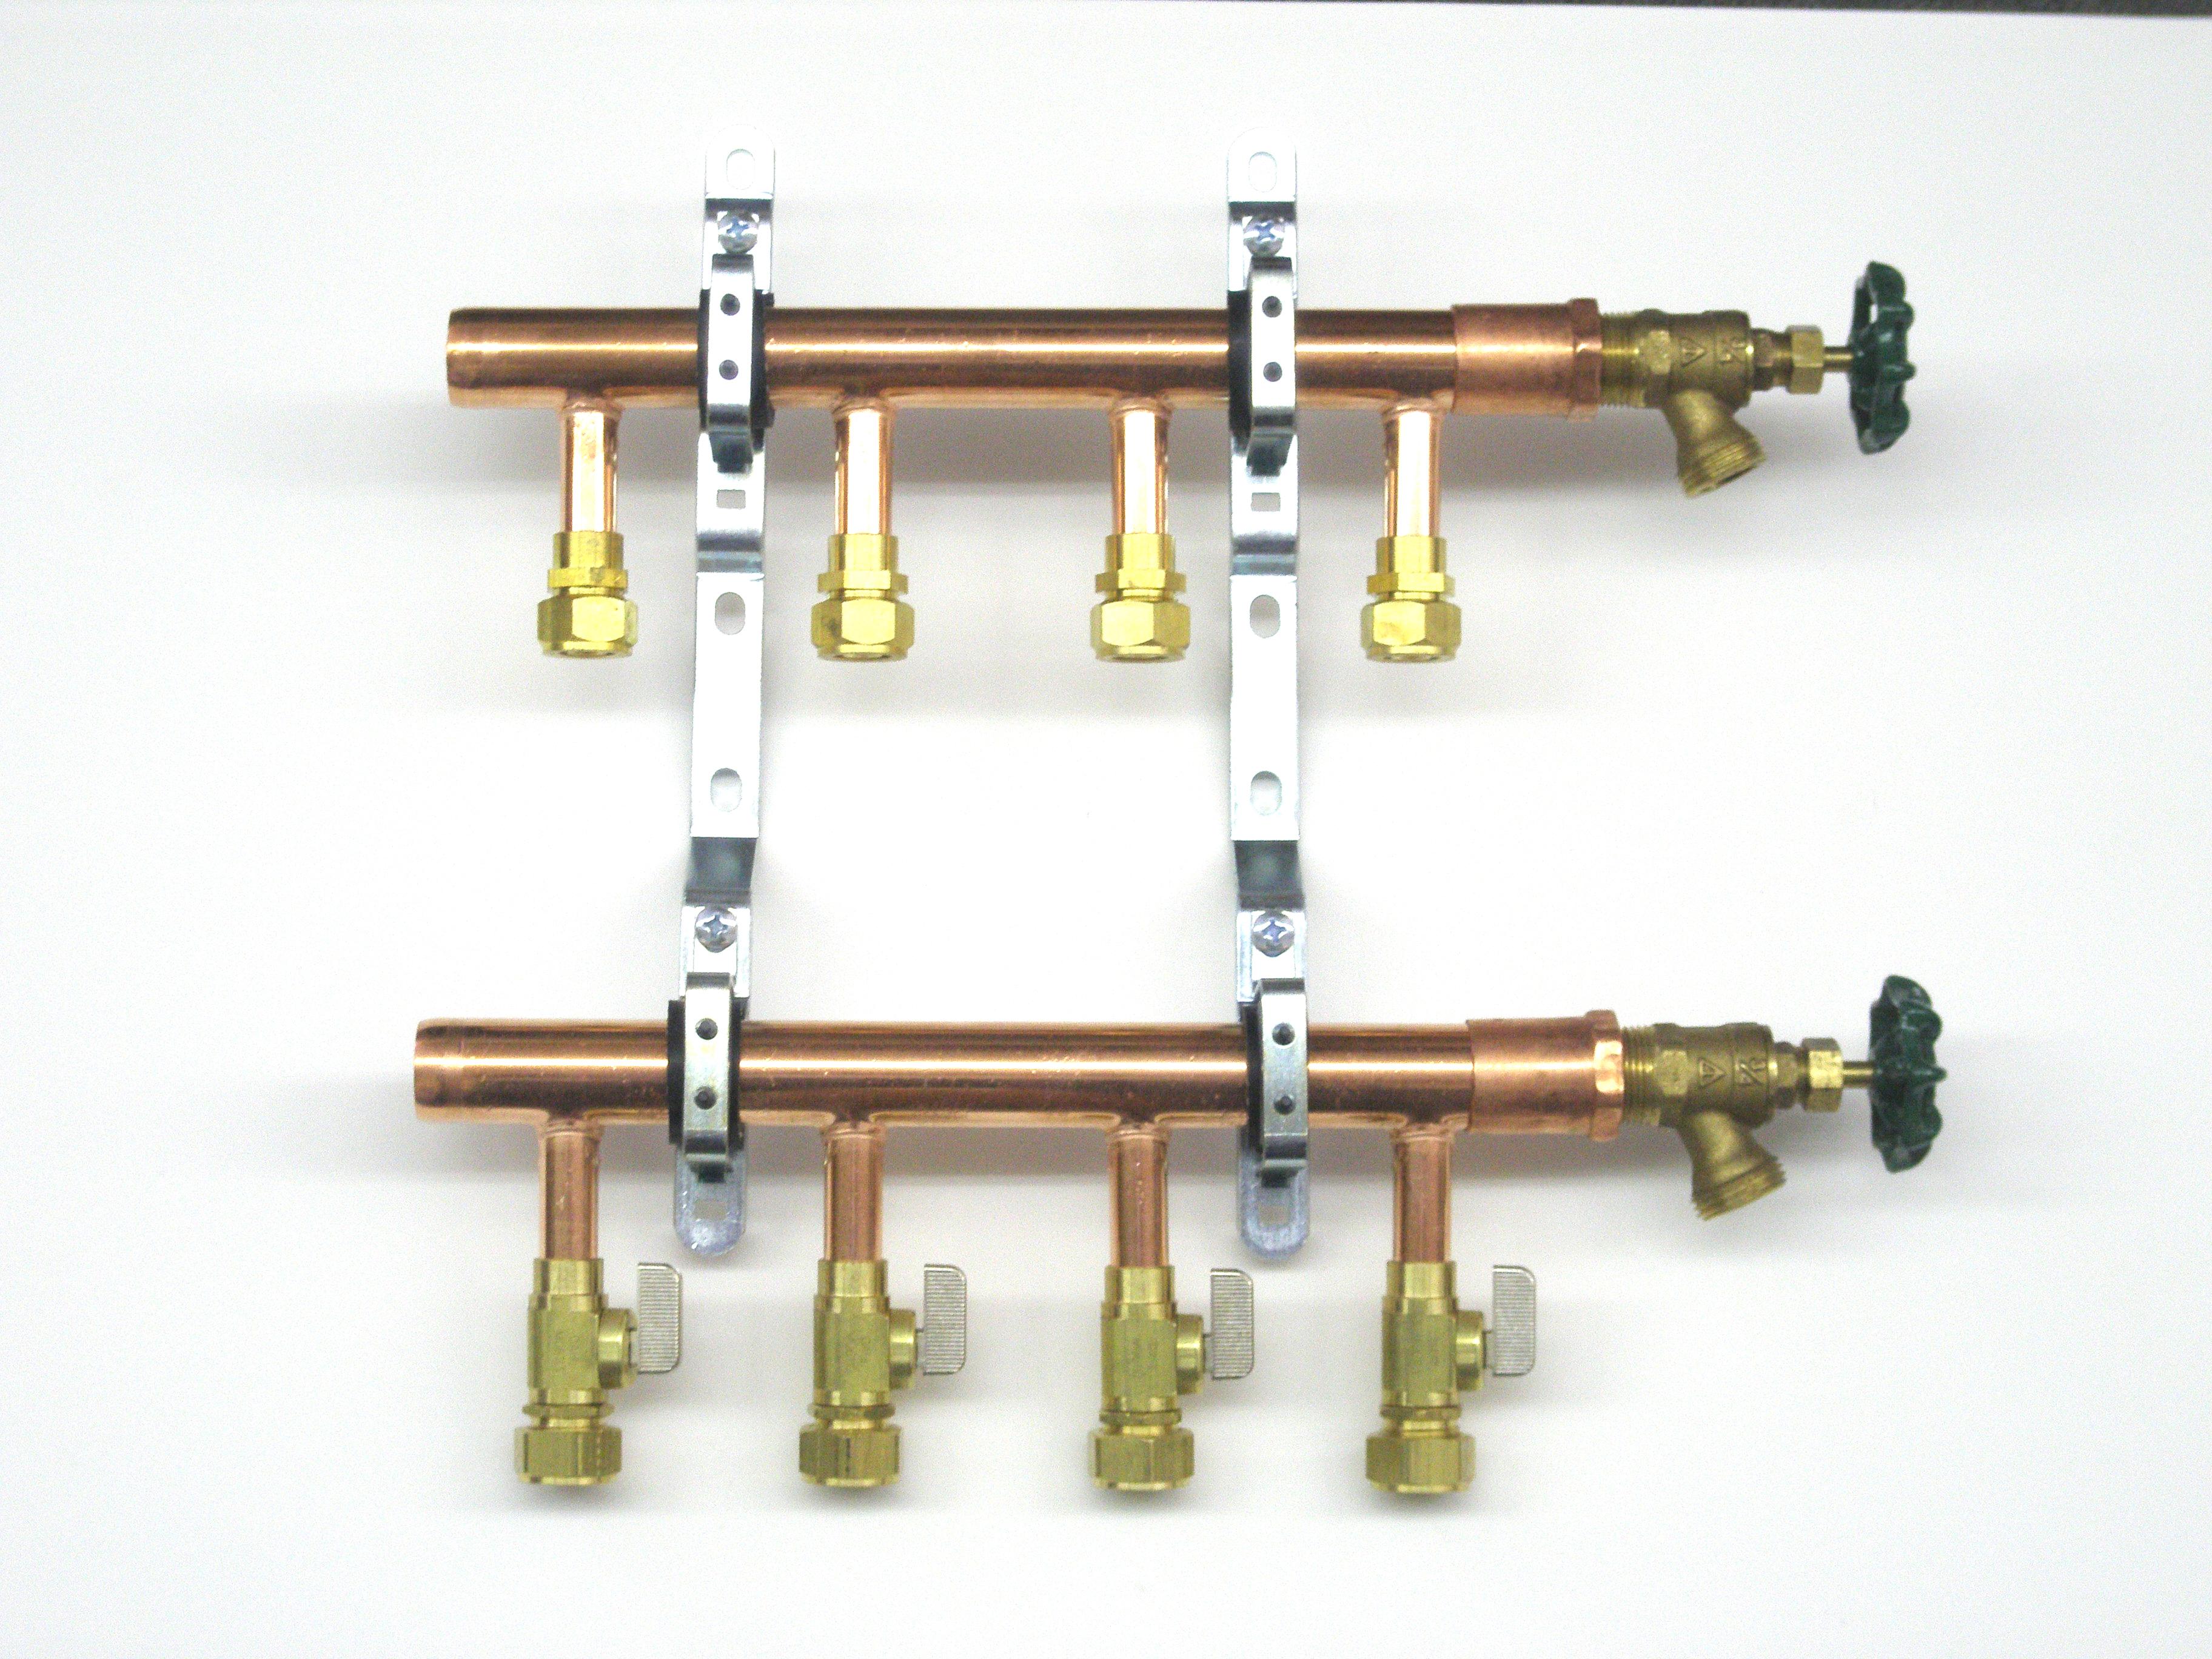 Copper Unassembled Pex-Al-Pex Manifolds